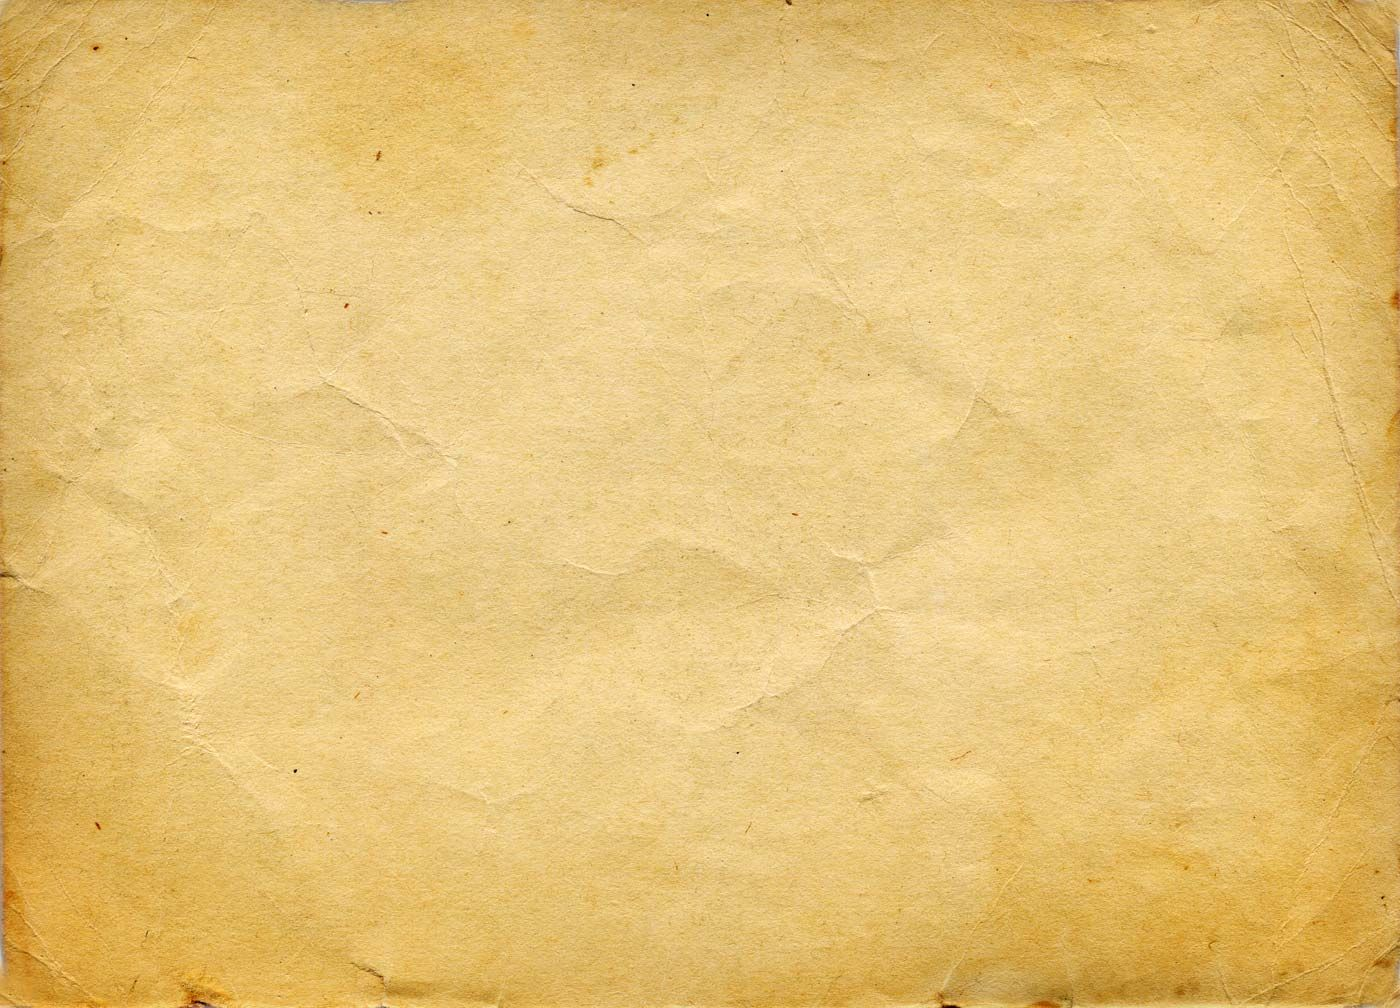 Paper power point backgrounds paper download power point free paper power point backgrounds paper download power point free toneelgroepblik Gallery